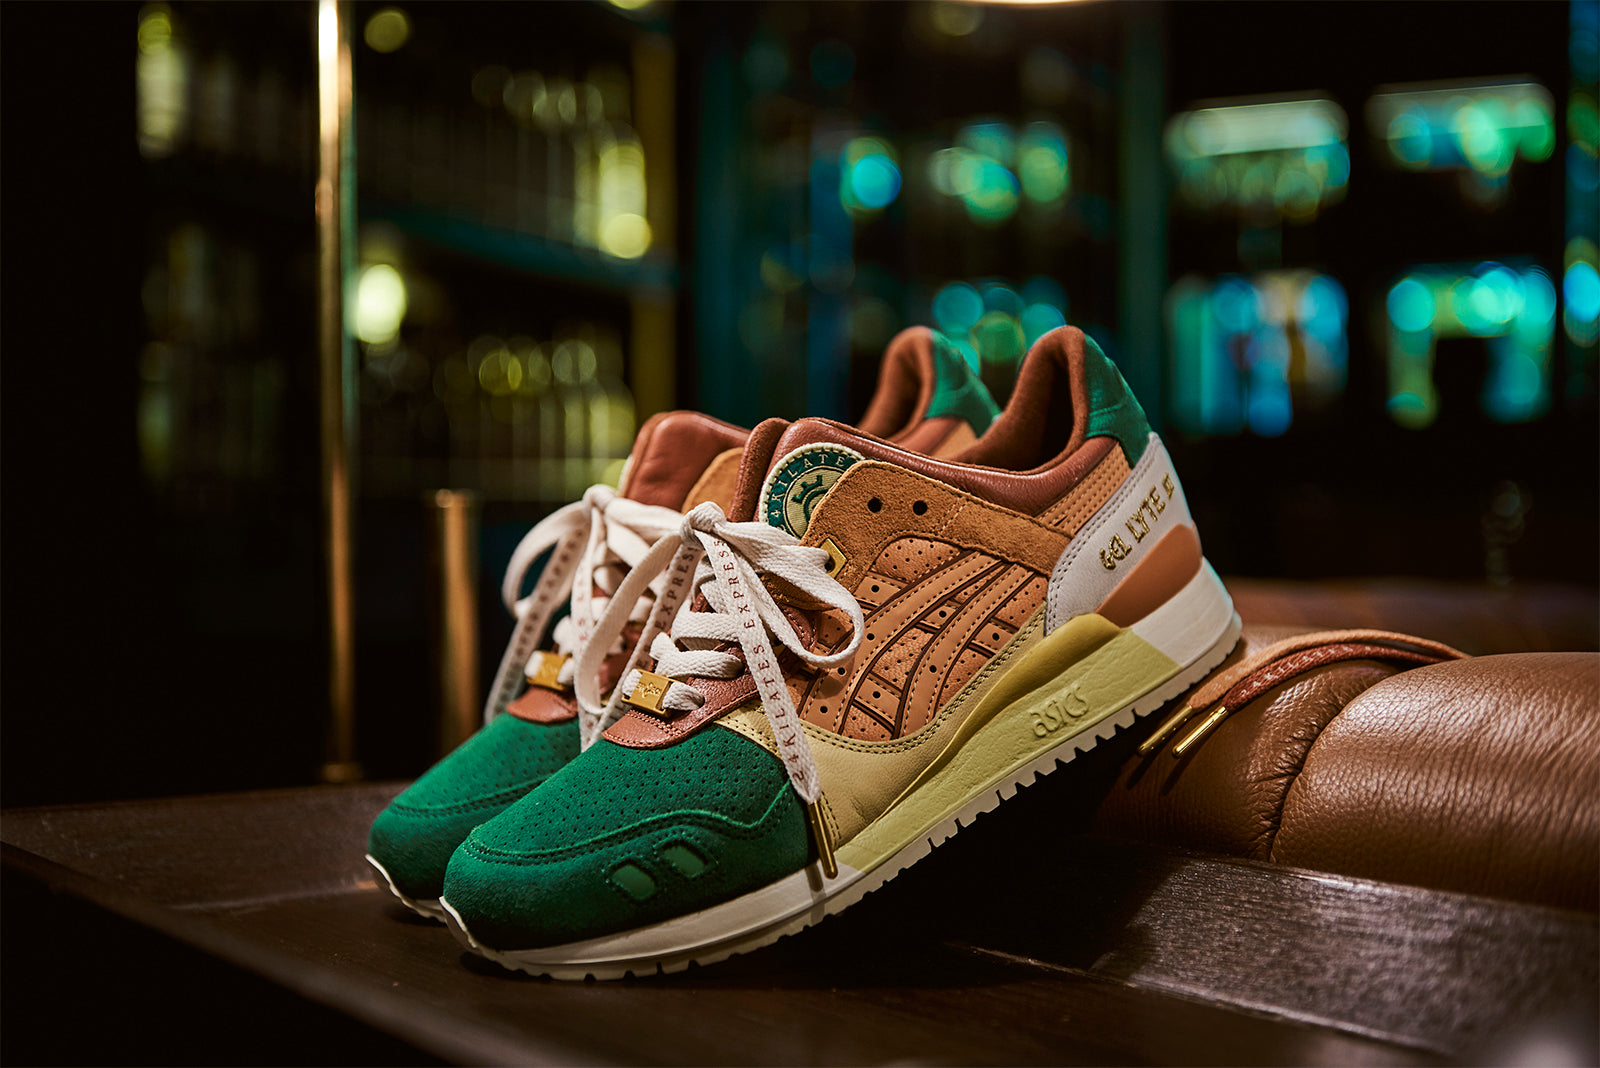 Asics Tiger teams up with Spanish sneaker authority 44fcb8a12a